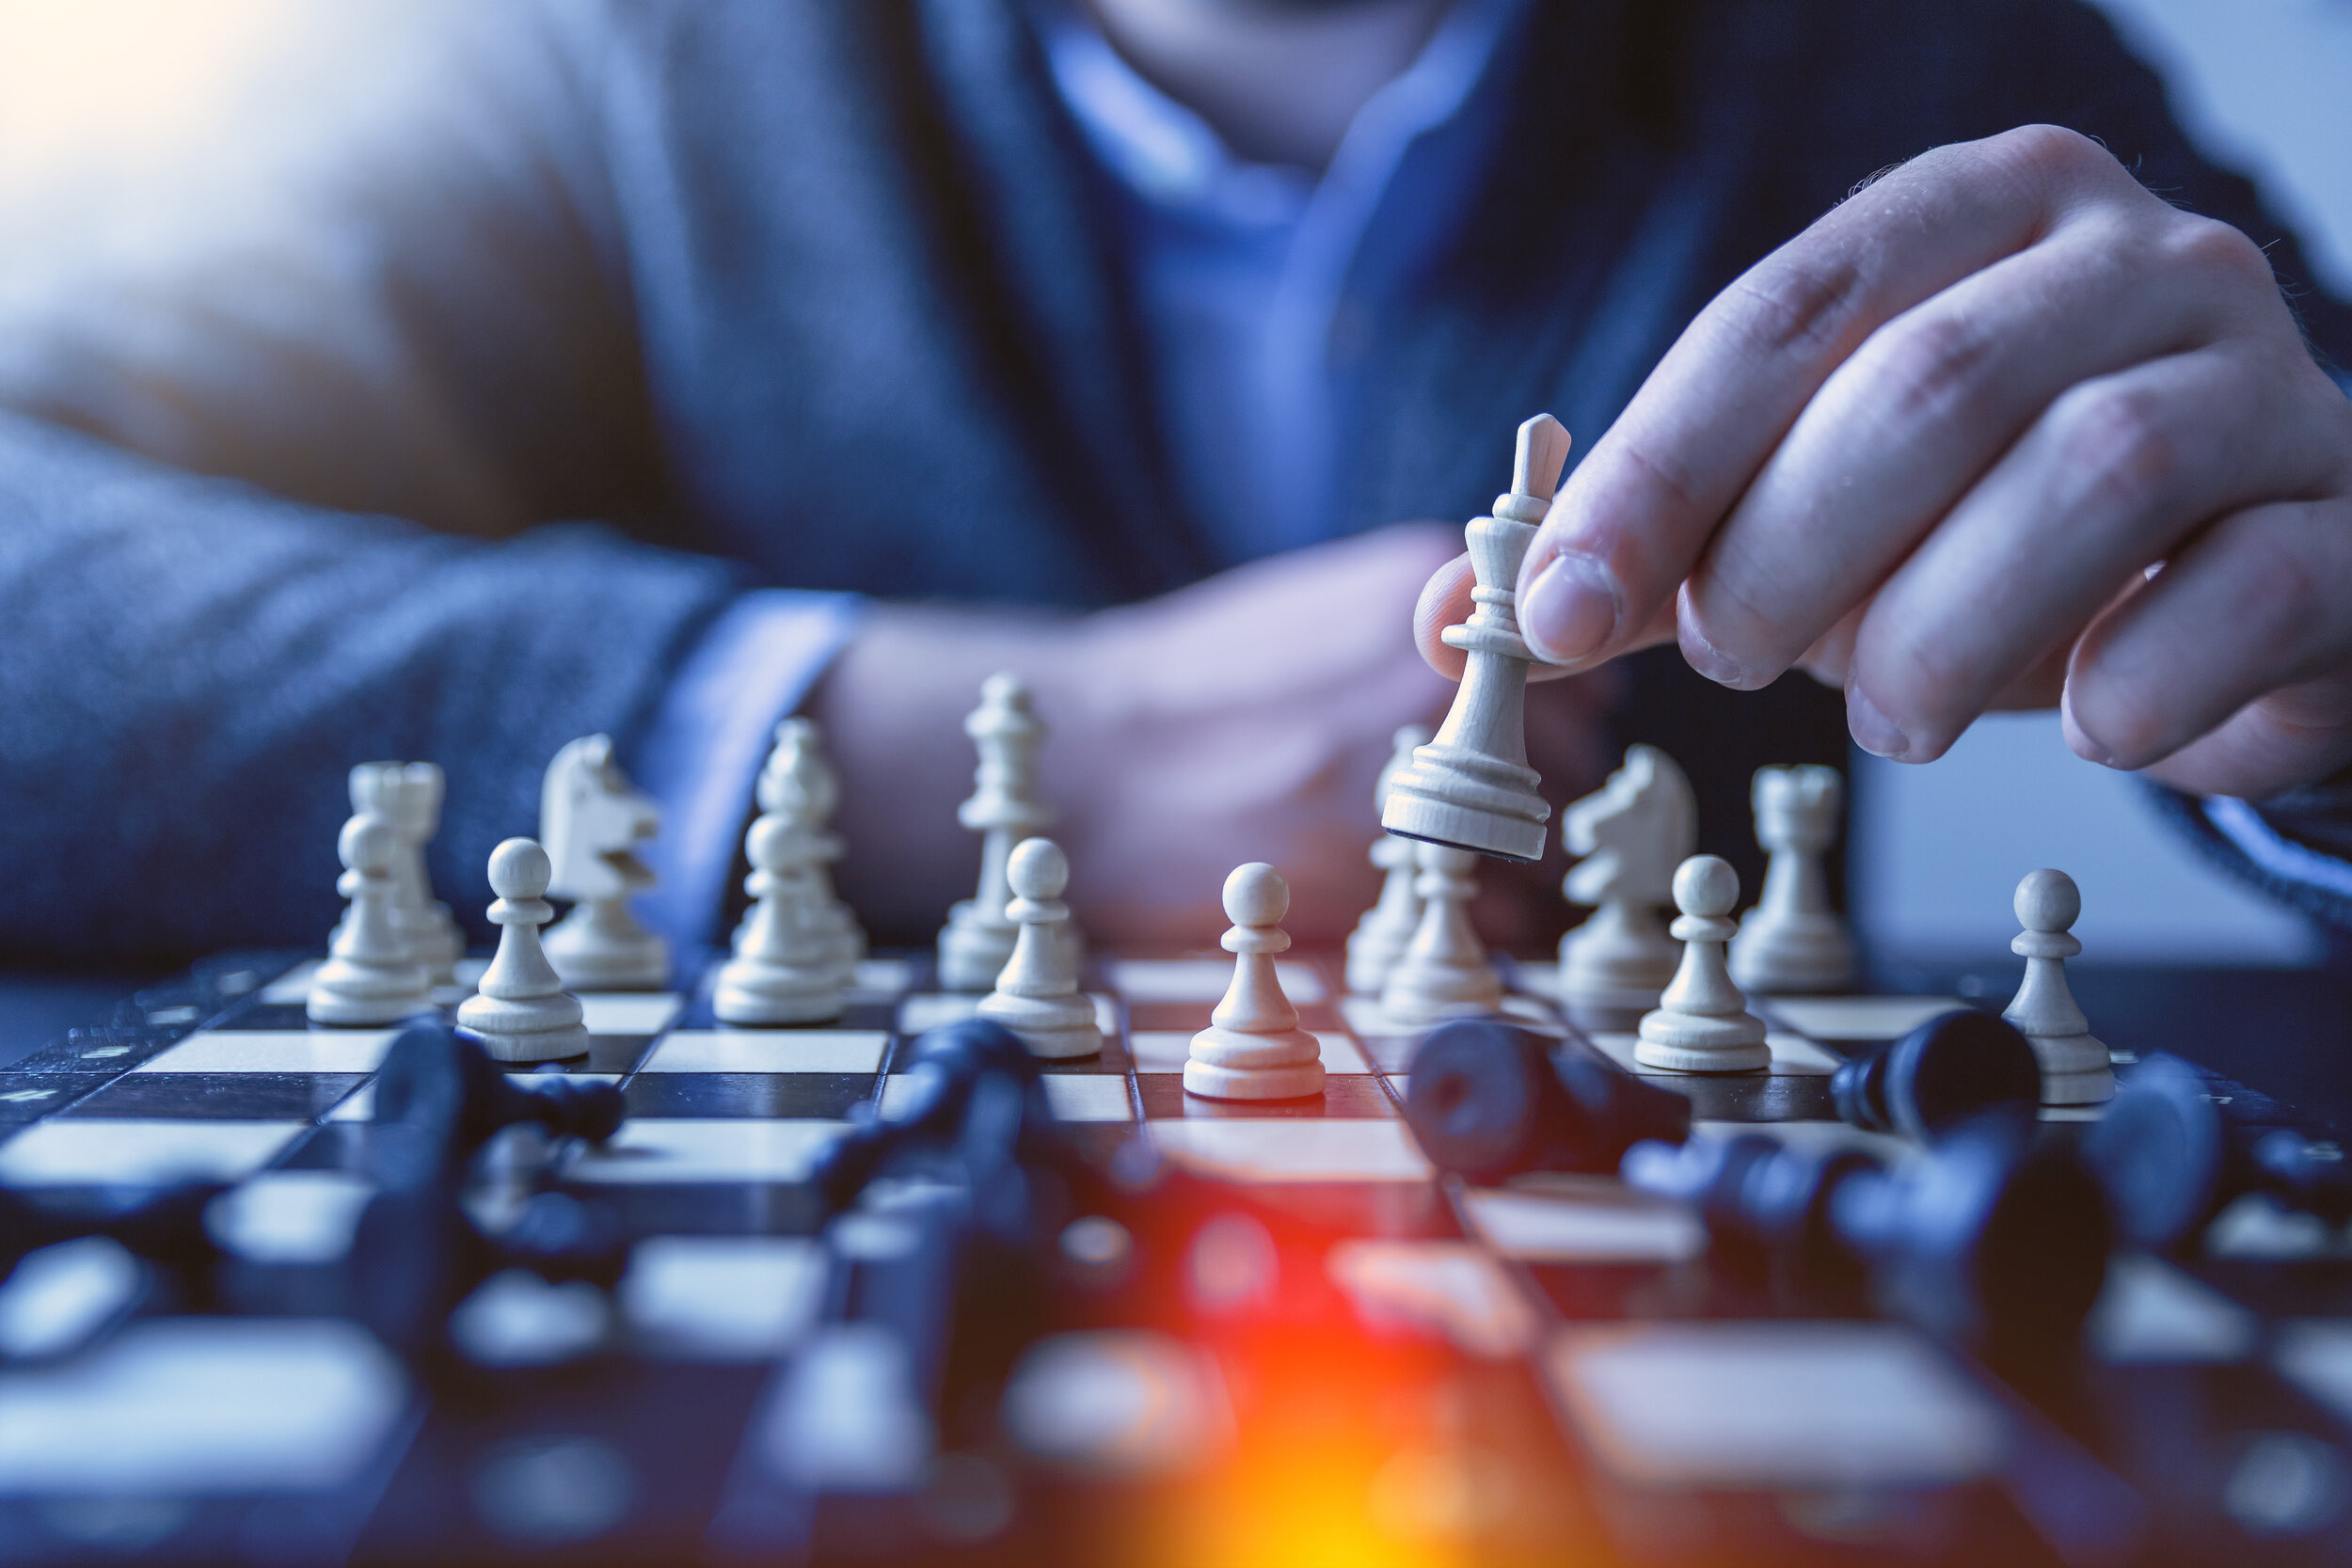 Take an end-game first approach: envision the pieces of a winning game and work backwards from there.